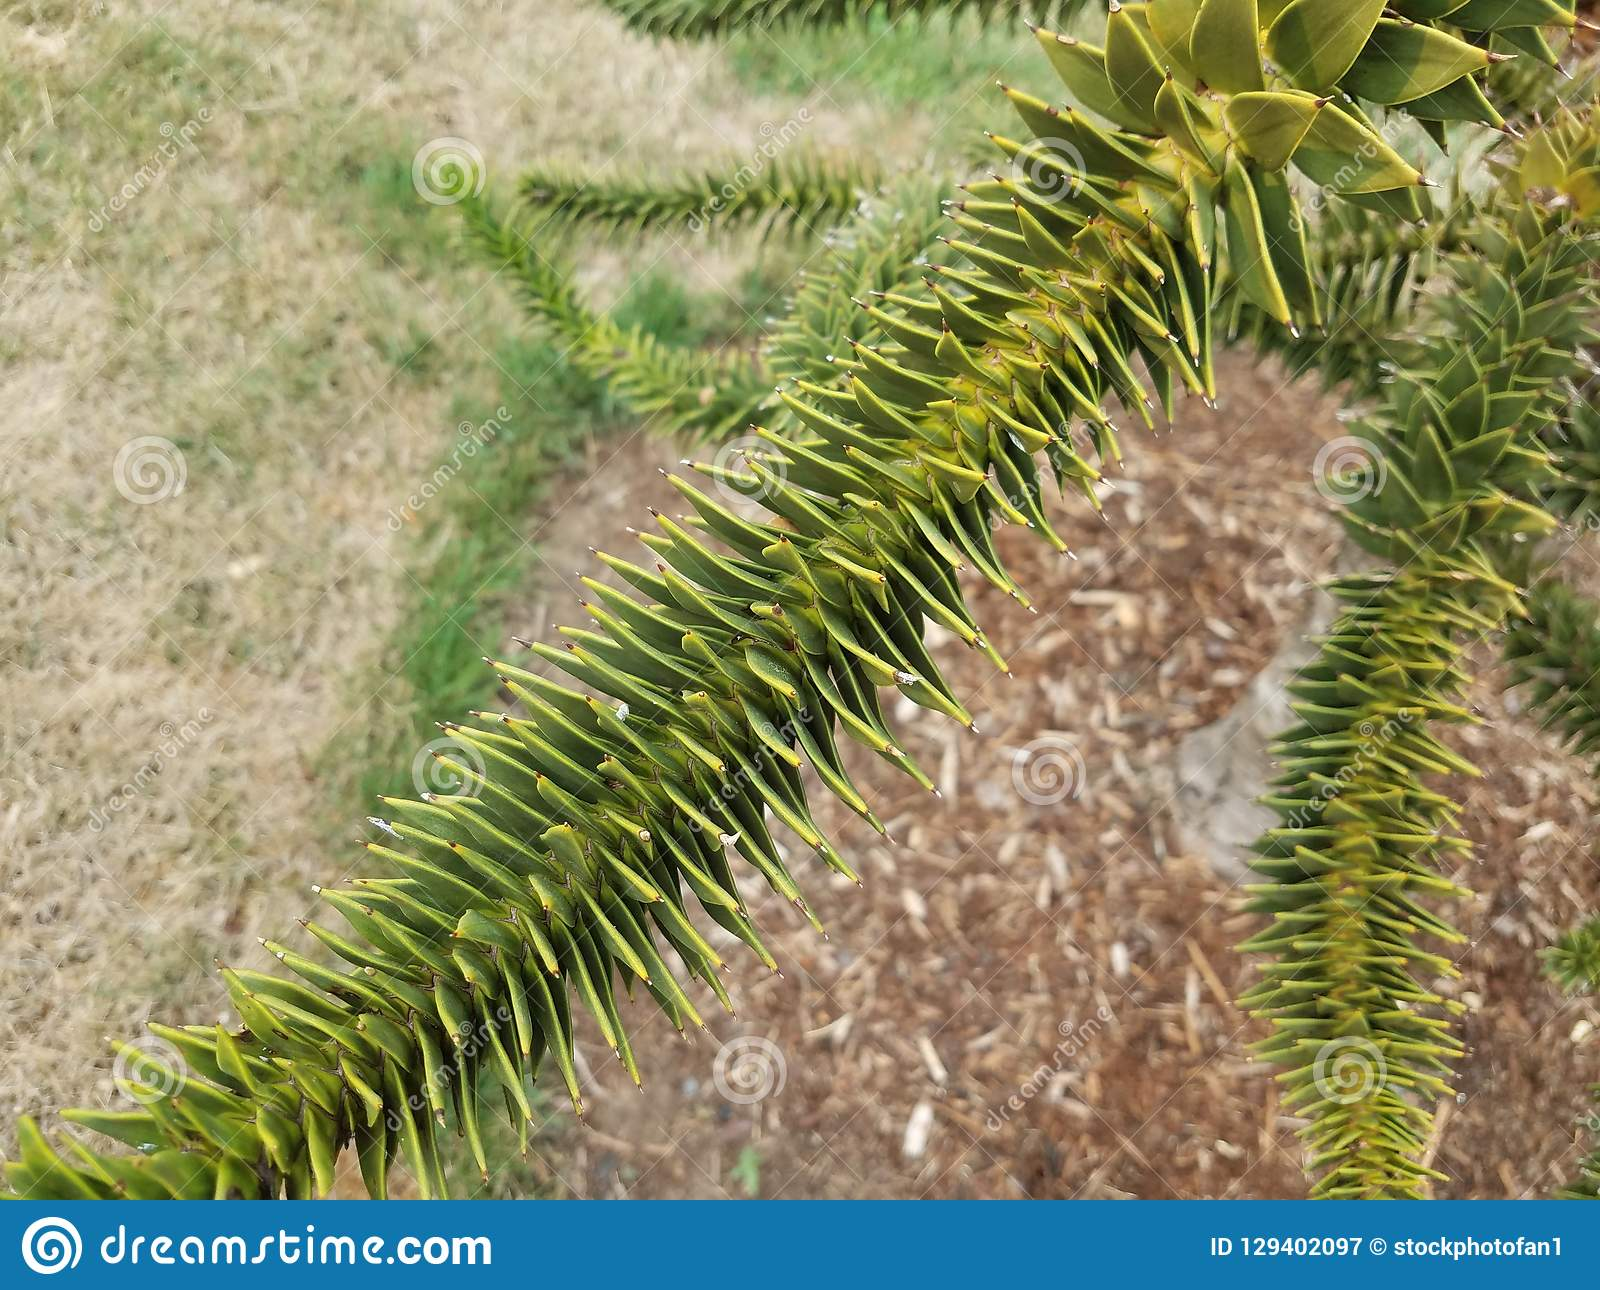 Green plant with spiky sharp leaves and brown mulch. A green plant with spiky sharp leaves and brown mulch royalty free stock photography